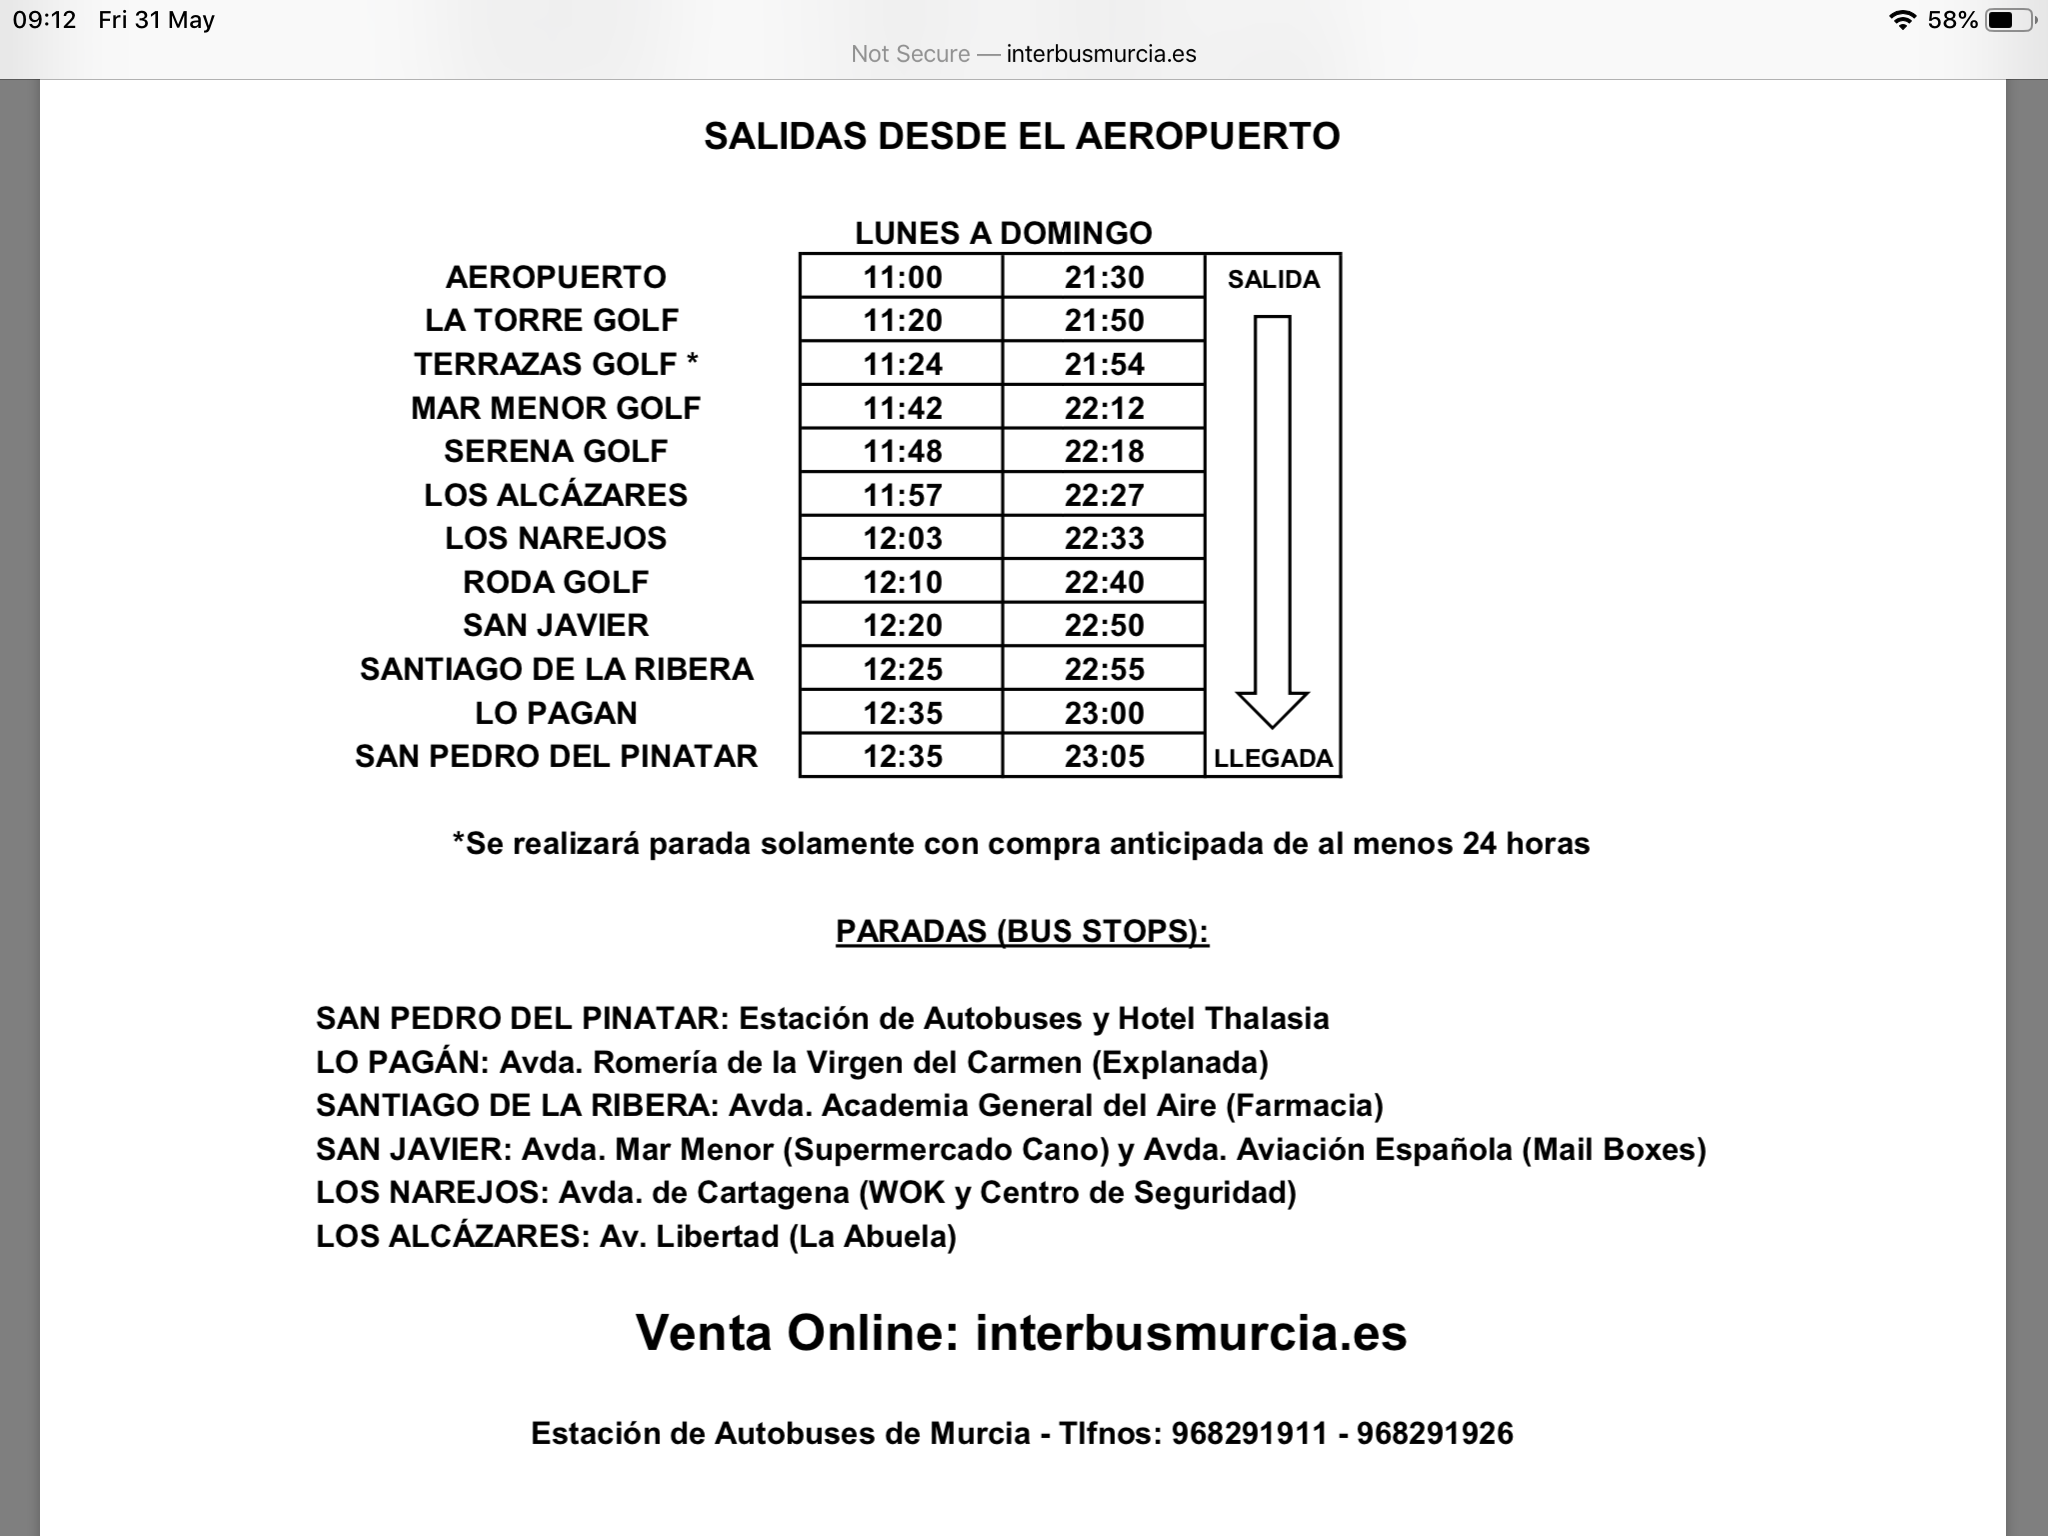 Inter bus timetable from Murcia international airport